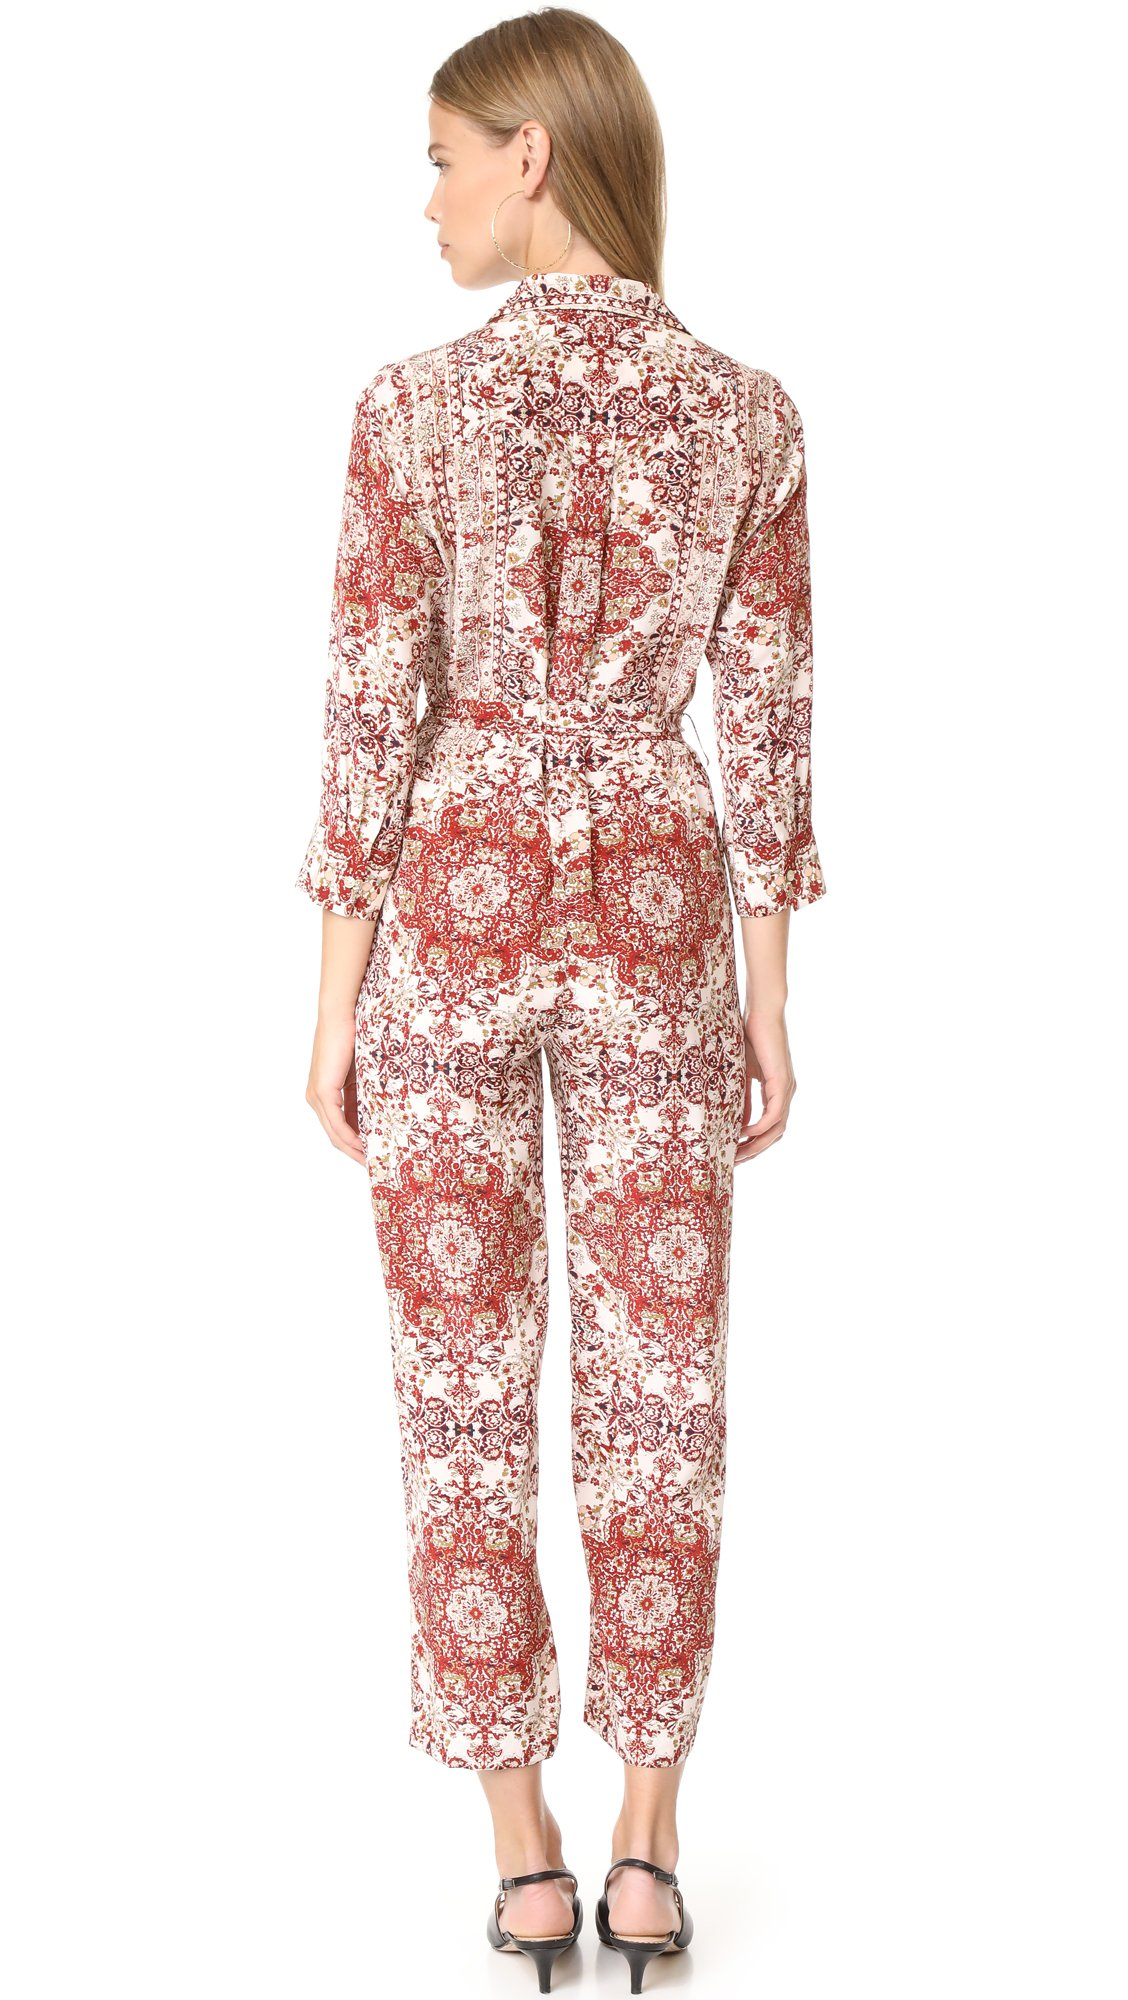 L'AGENCE Women's Delia 3/4 Sleeve Jumpsuit, Rhubarb Multi, 10 by L'agence (Image #2)